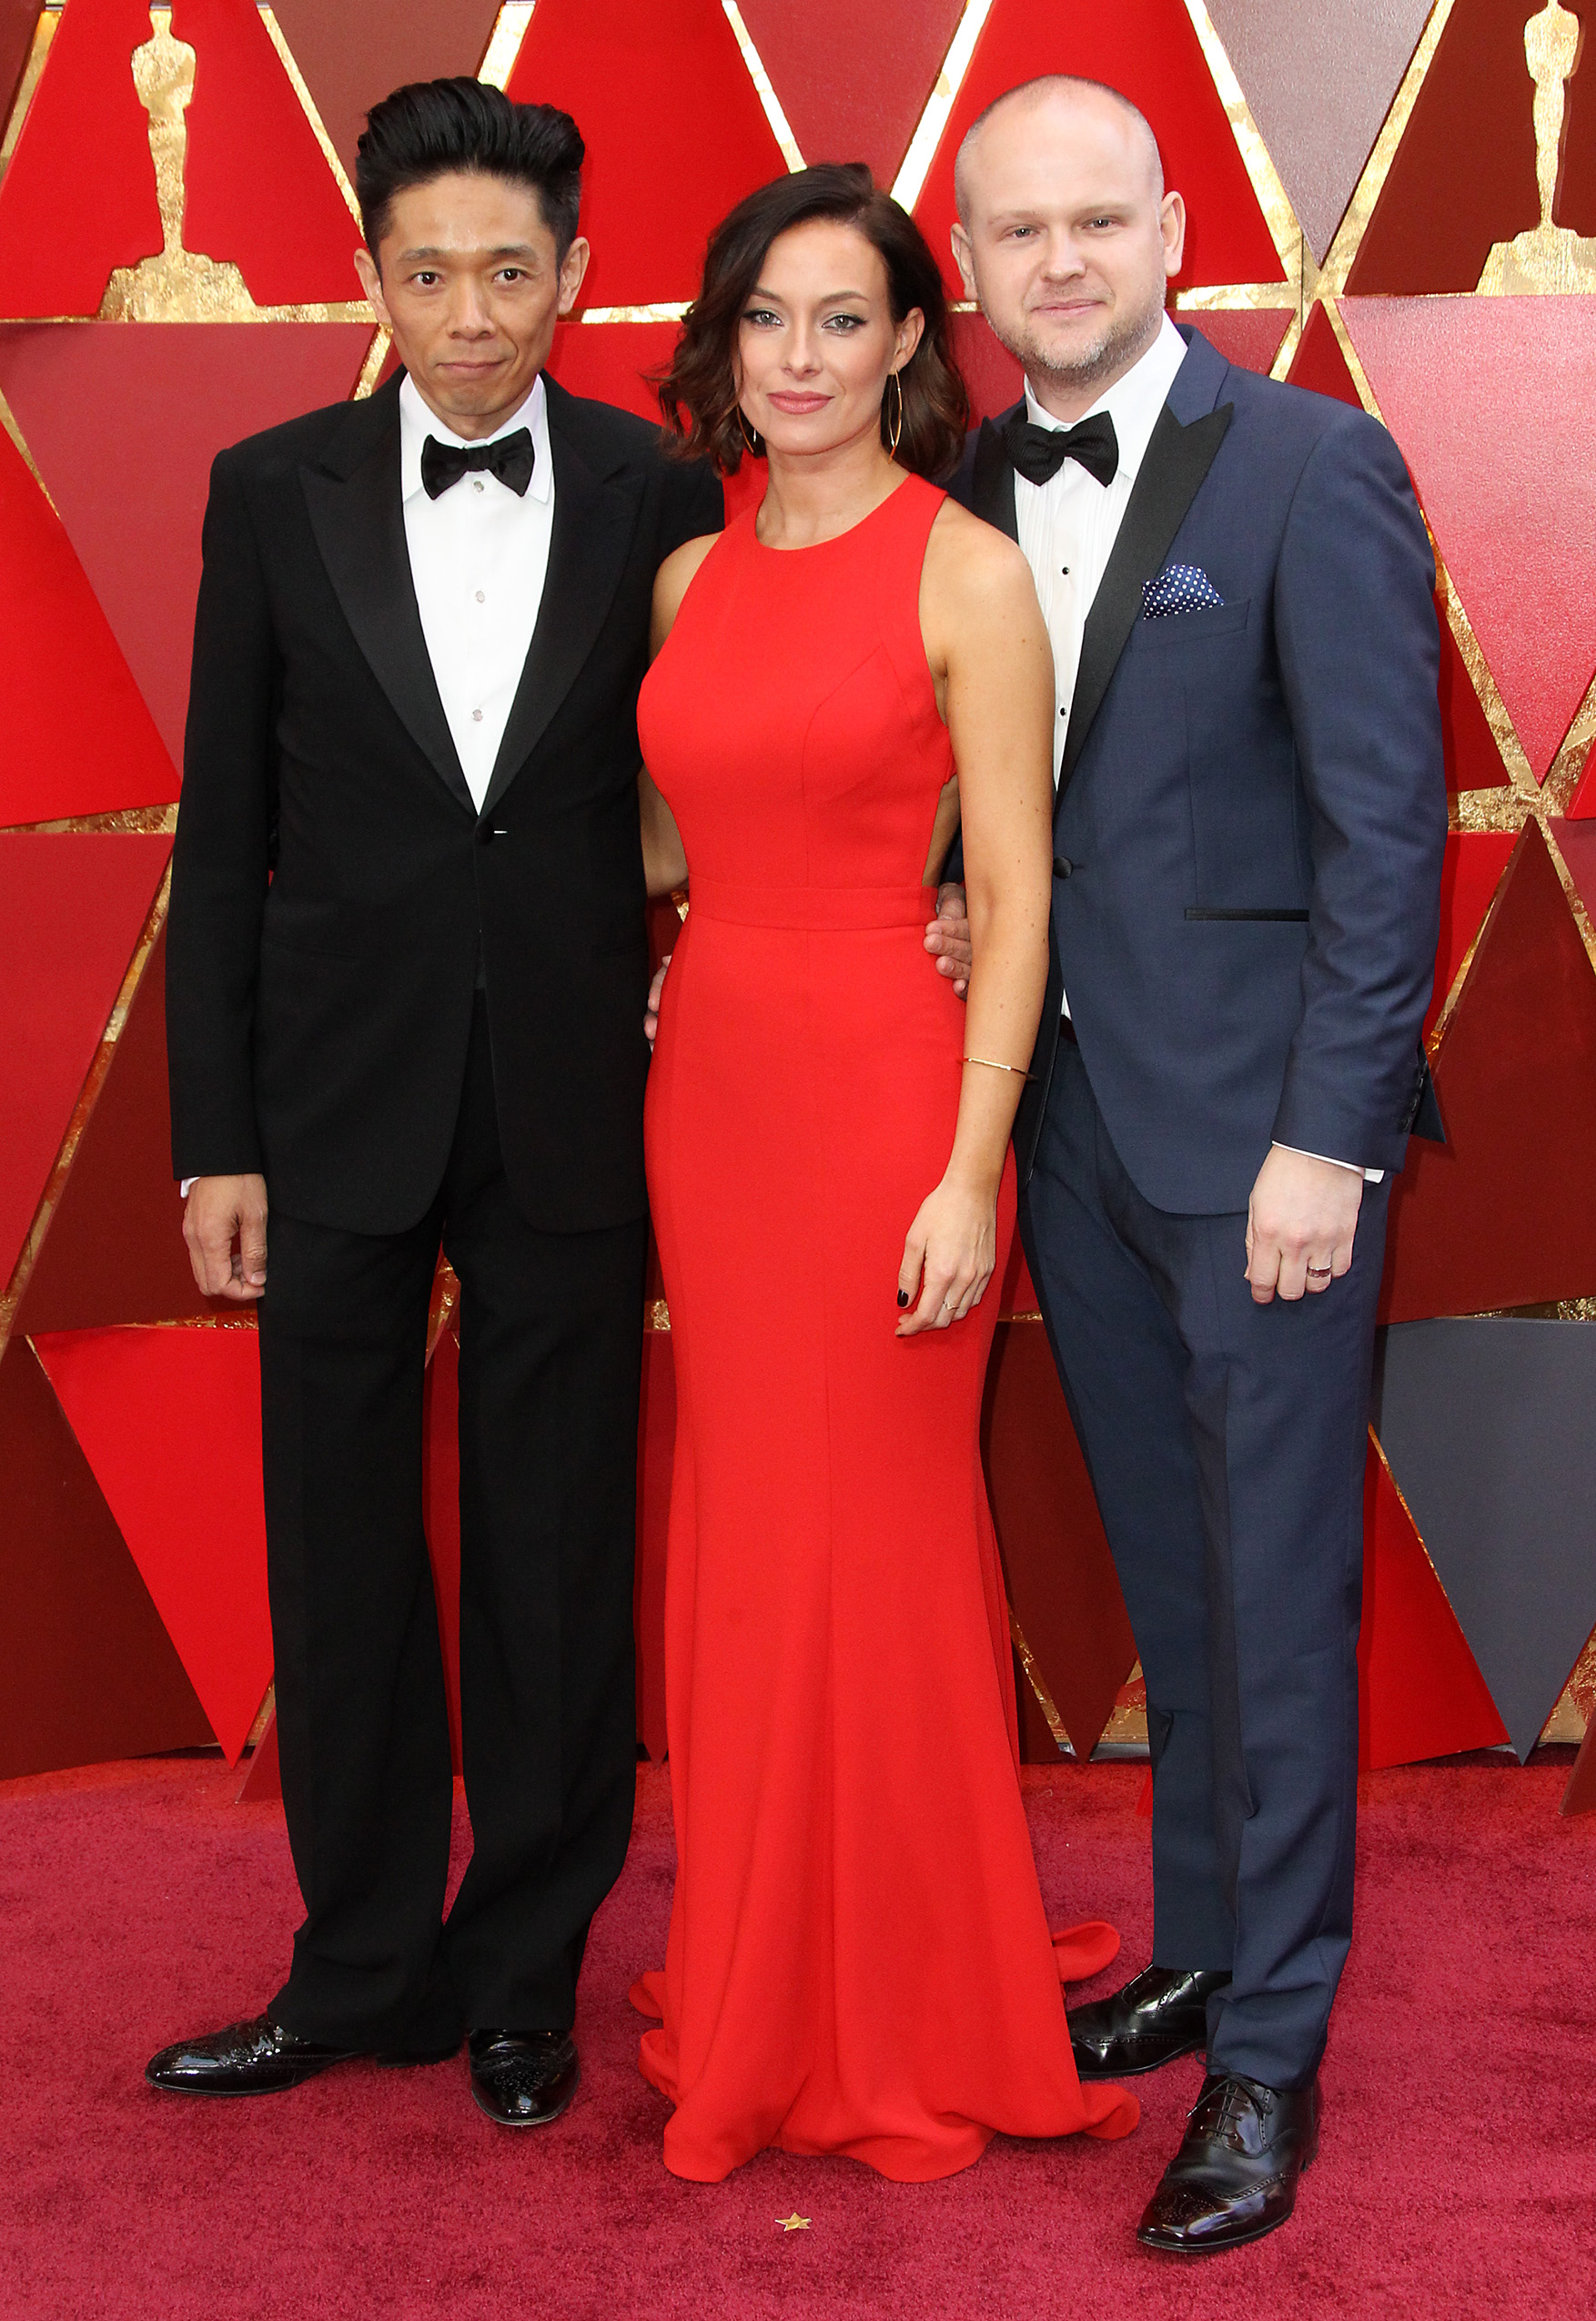 Kazuhiro Tsuji, Lucy Sibbick and David Malinowski{&nbsp;}arrive at the 90th Annual Academy Awards (Oscars) held at the Dolby Theater in Hollywood, California. (Image: Adriana M. Barraza/WENN.com)<p></p>